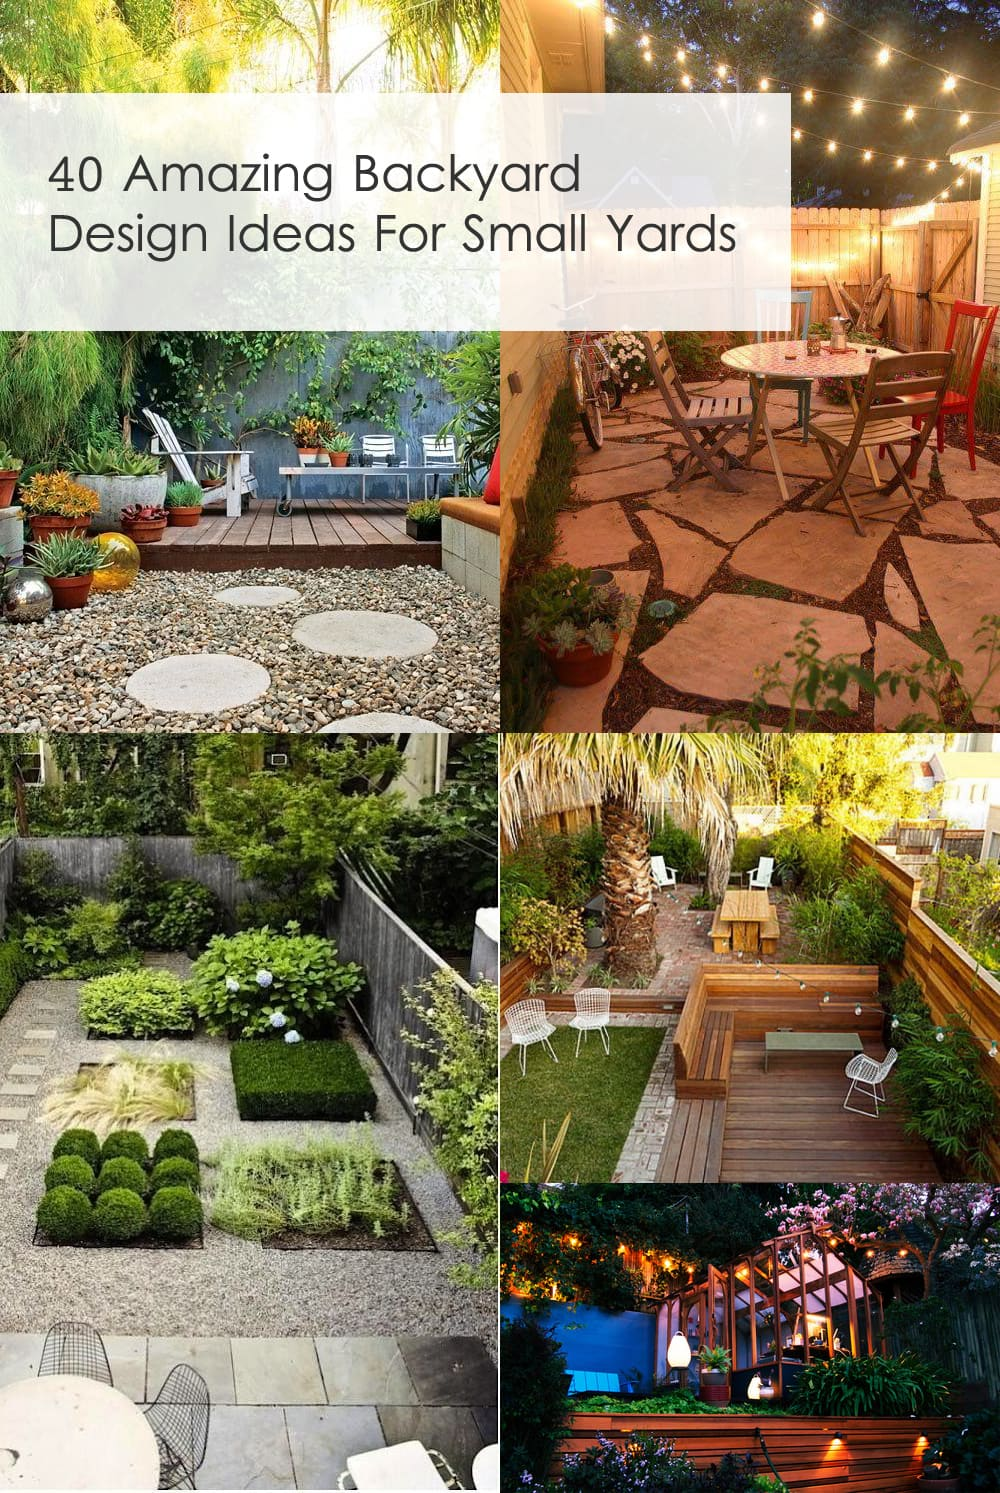 40 amazing design ideas for small backyards - Patio Design Ideas For Small Backyards